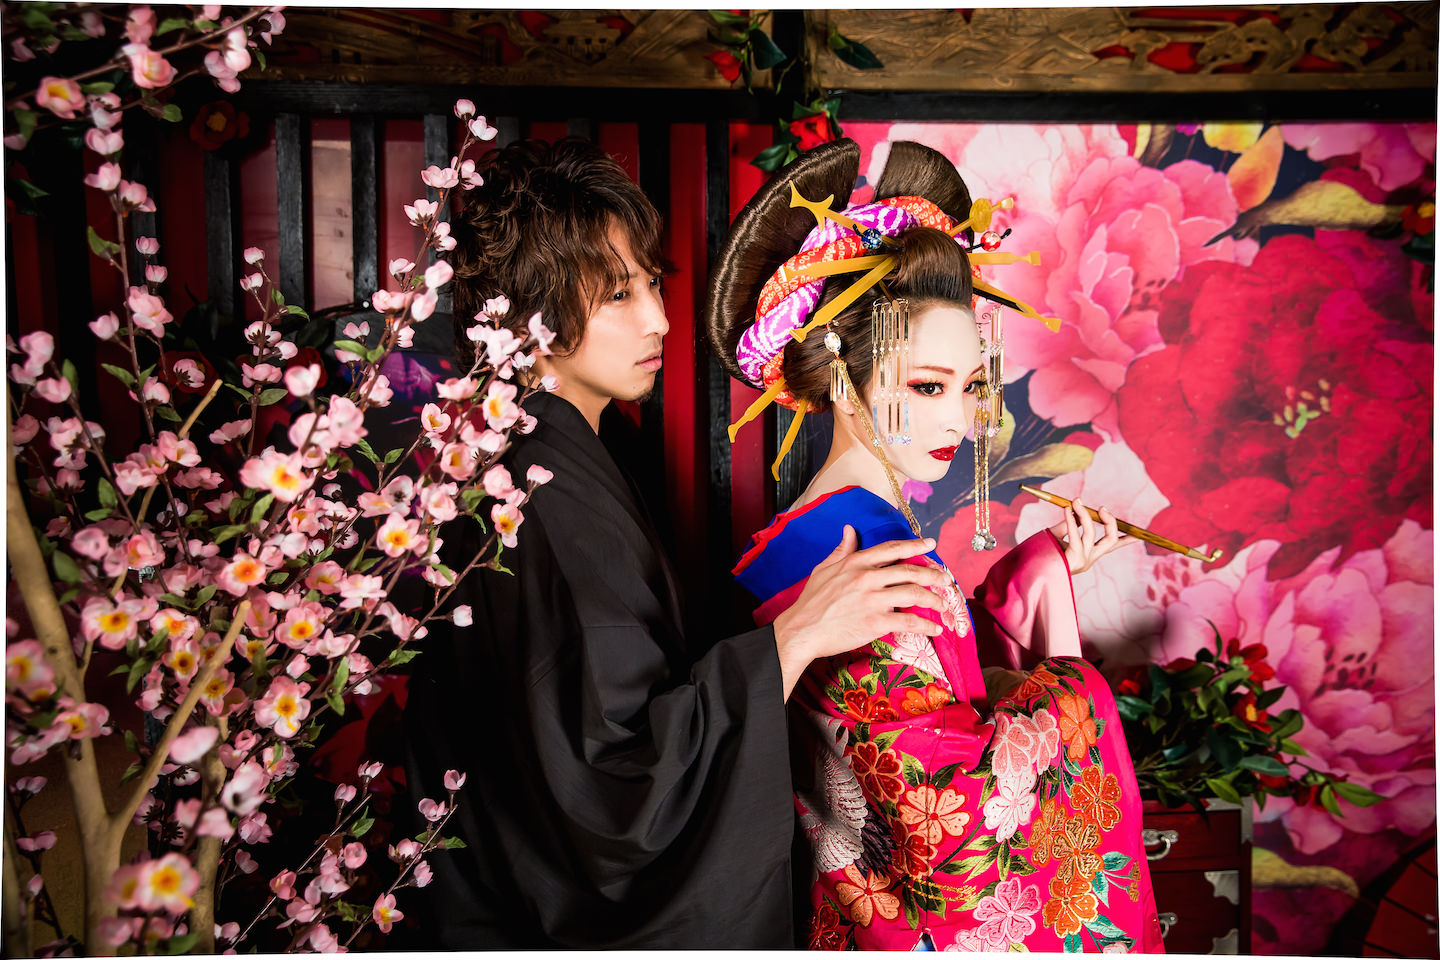 Man and Woman dressed up with Kimono. The woman is known as Oiran who looks very sexy and was a fashion leader in ancient Kyoto. Photo taken by Studio Esperanto.